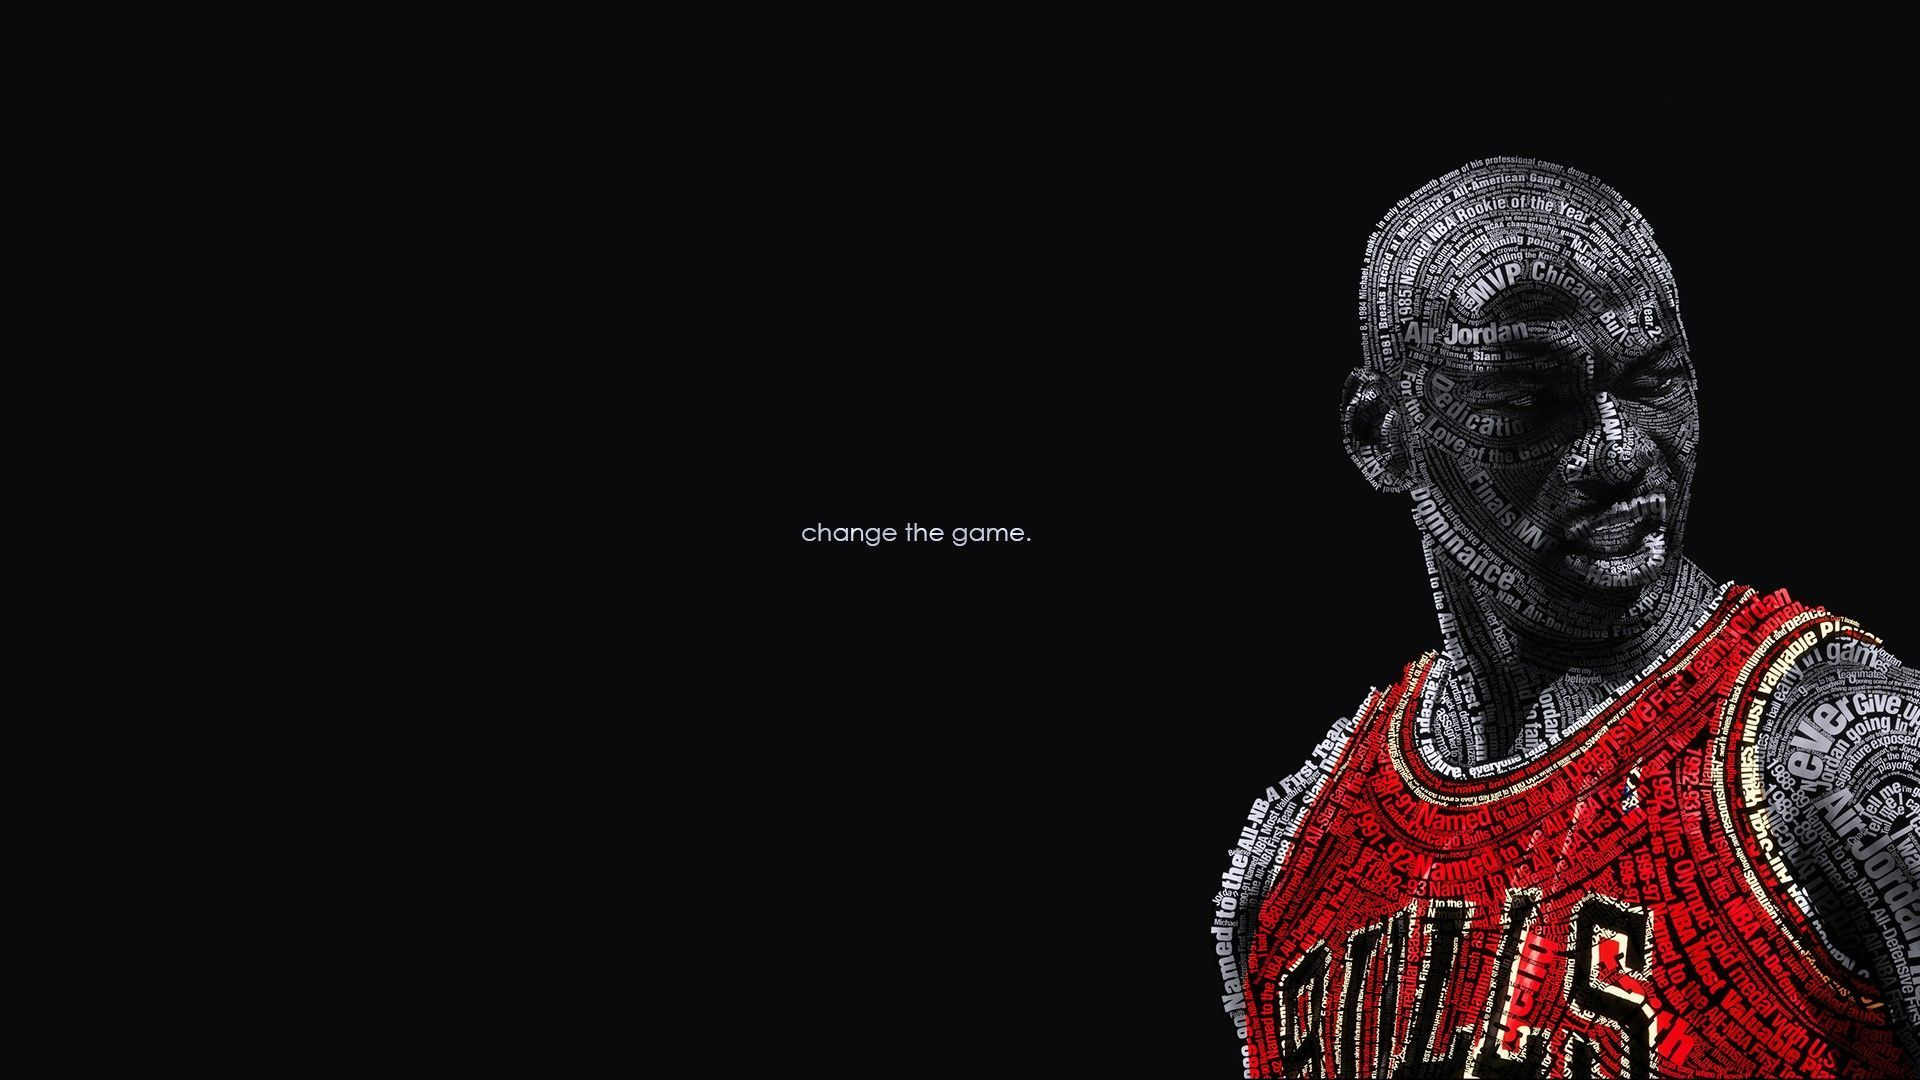 Basketball Wallpapers HD 1920x1080 Group (88+)